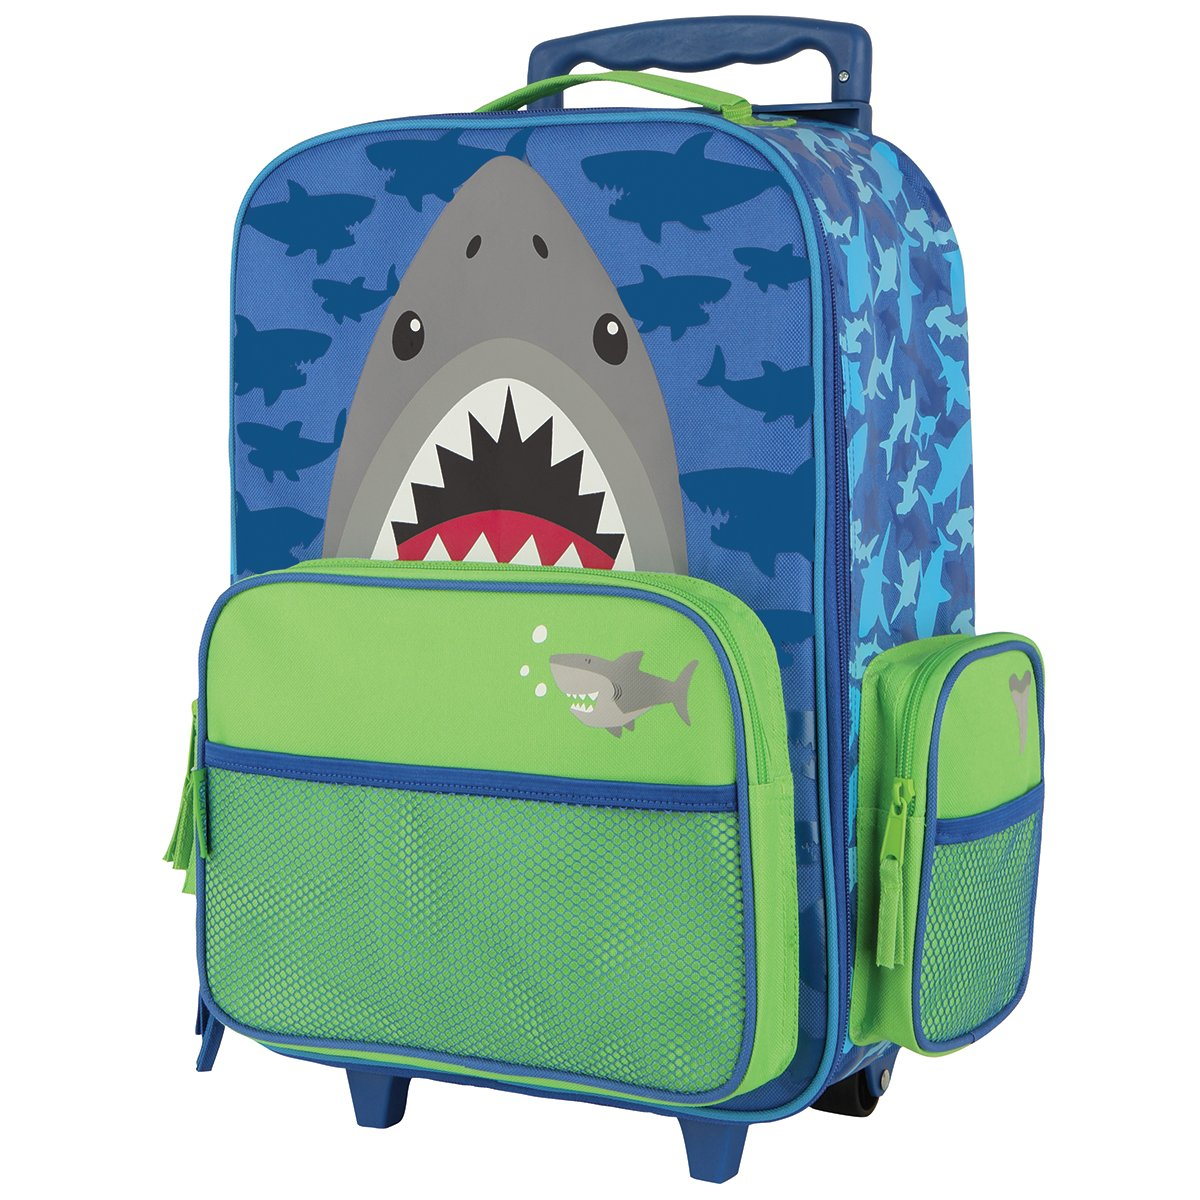 Stephen Joseph Boys' Shark Royal Blue/Green/Gray